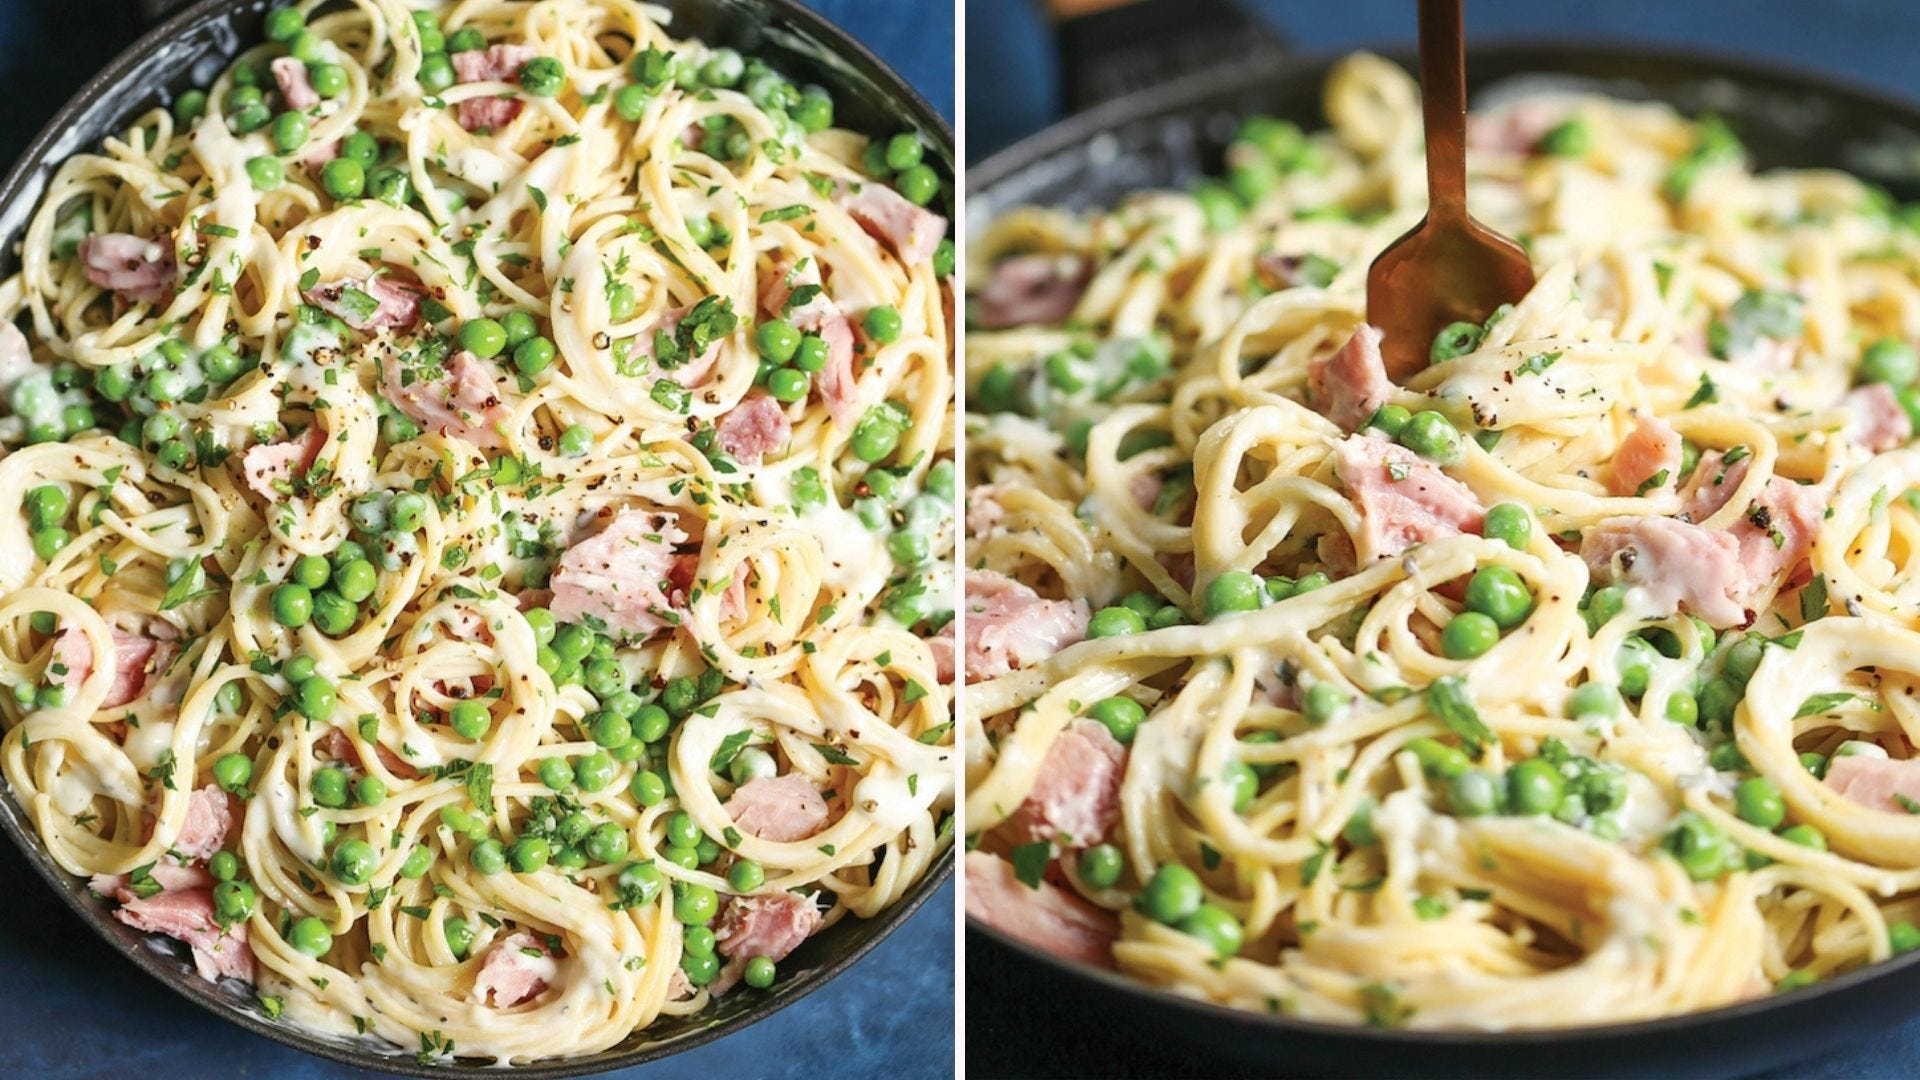 Two images: The left image is of an overview shot of ham and peas pasta and the right image is of an angled front view of the same dish.